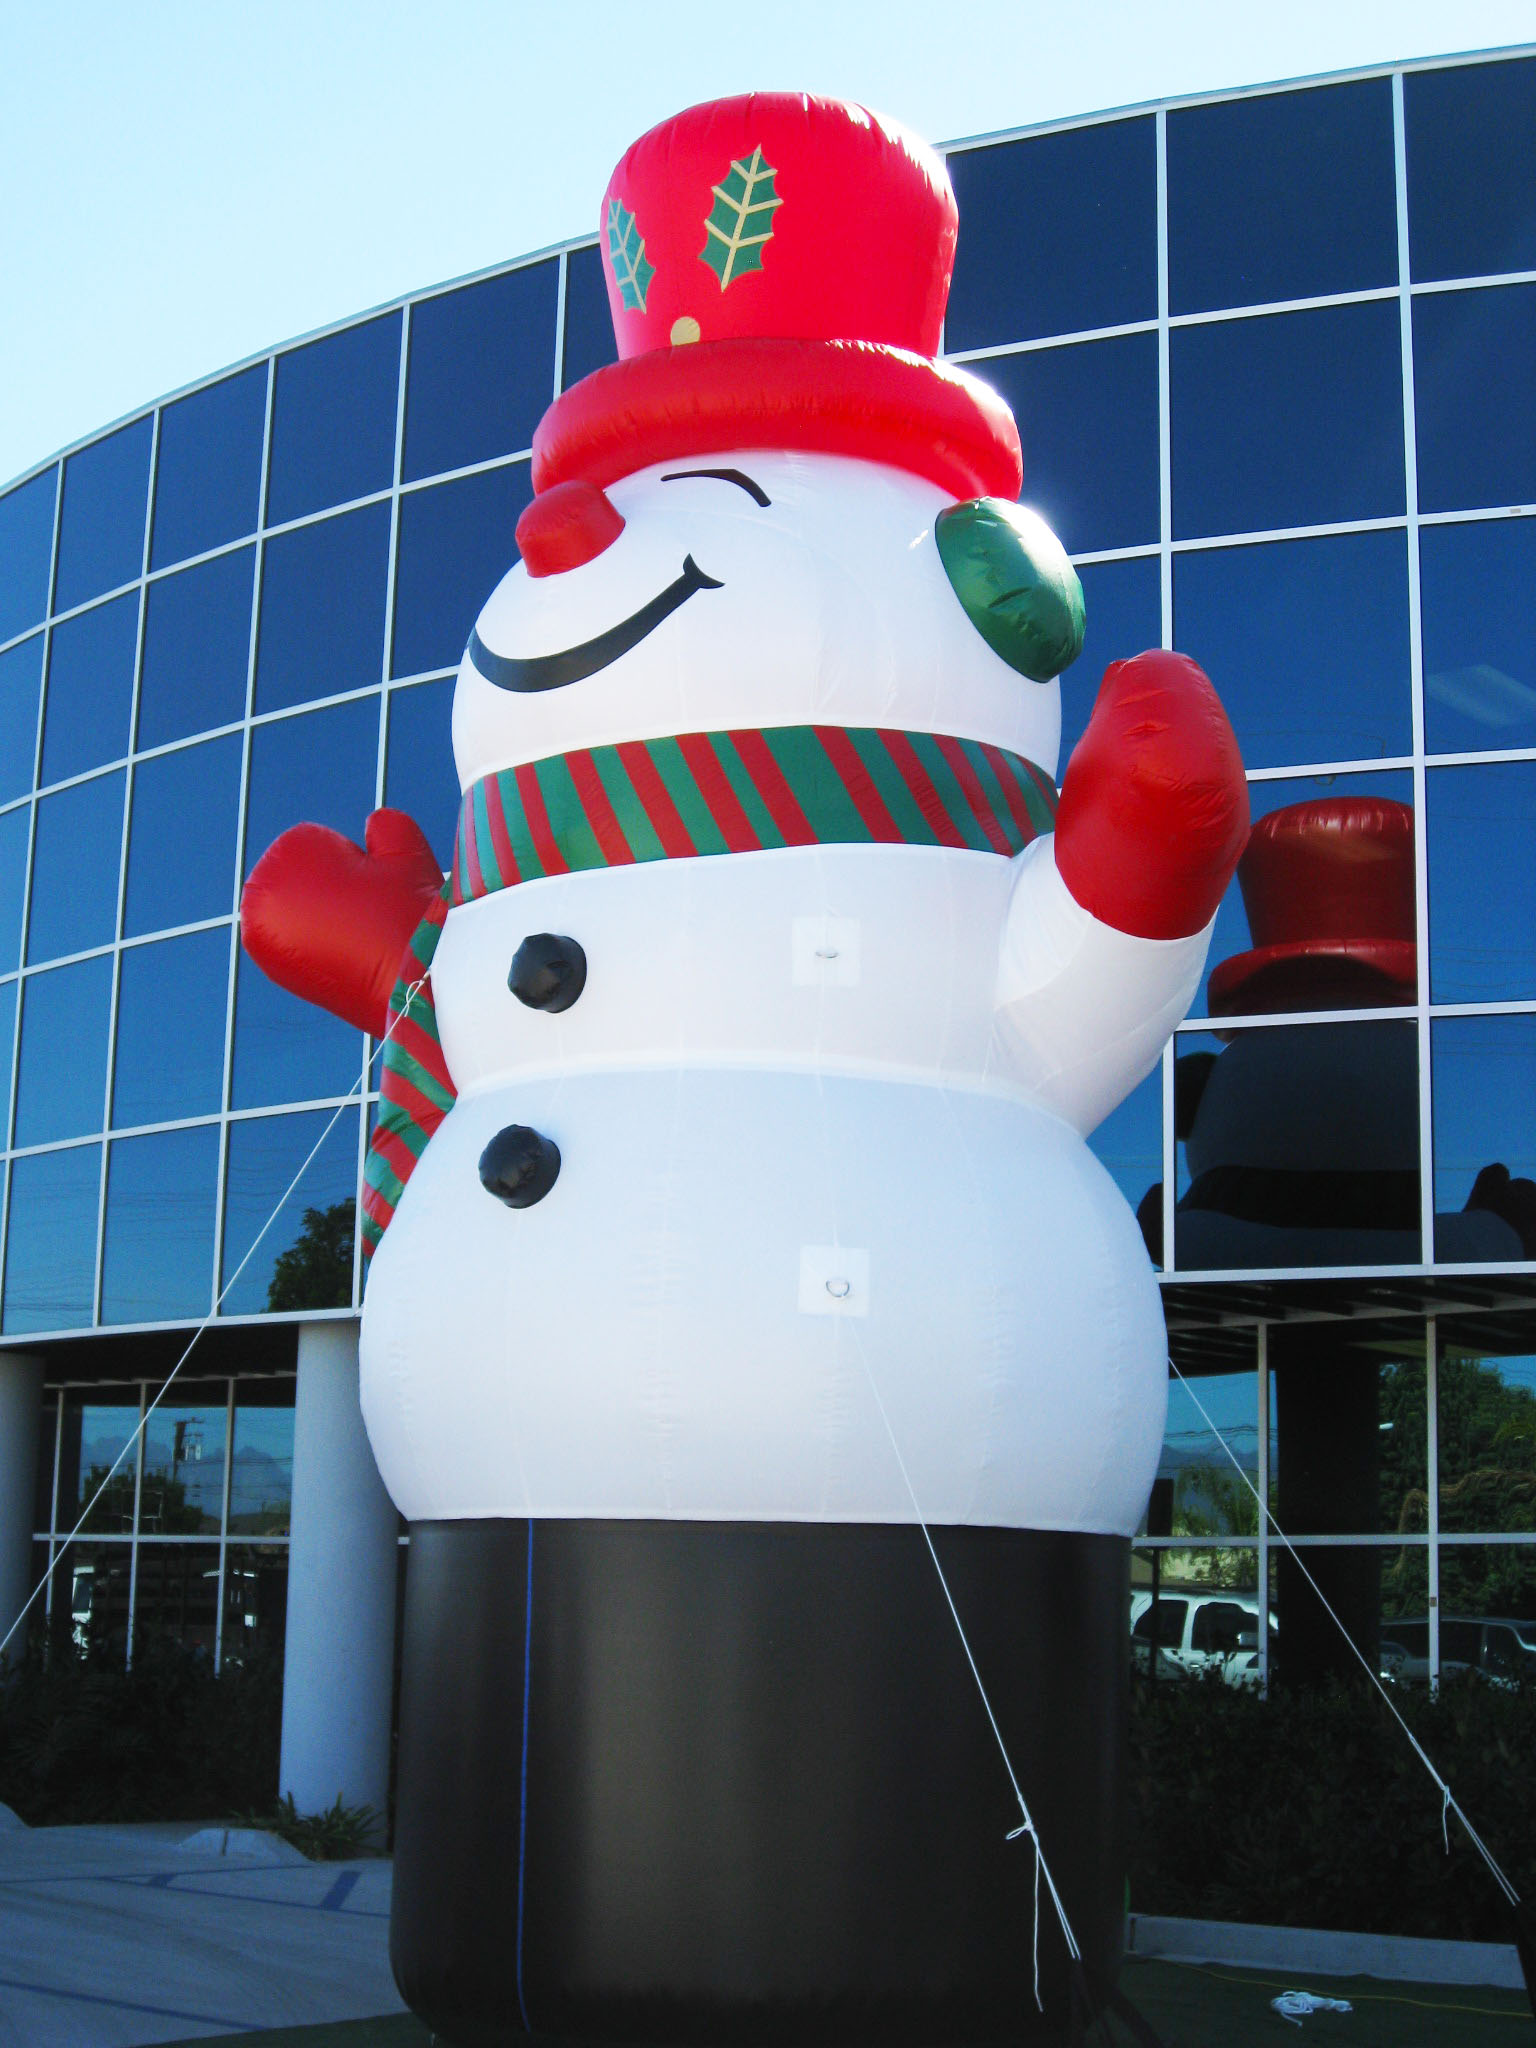 Giant Inflatable Snowman Prop